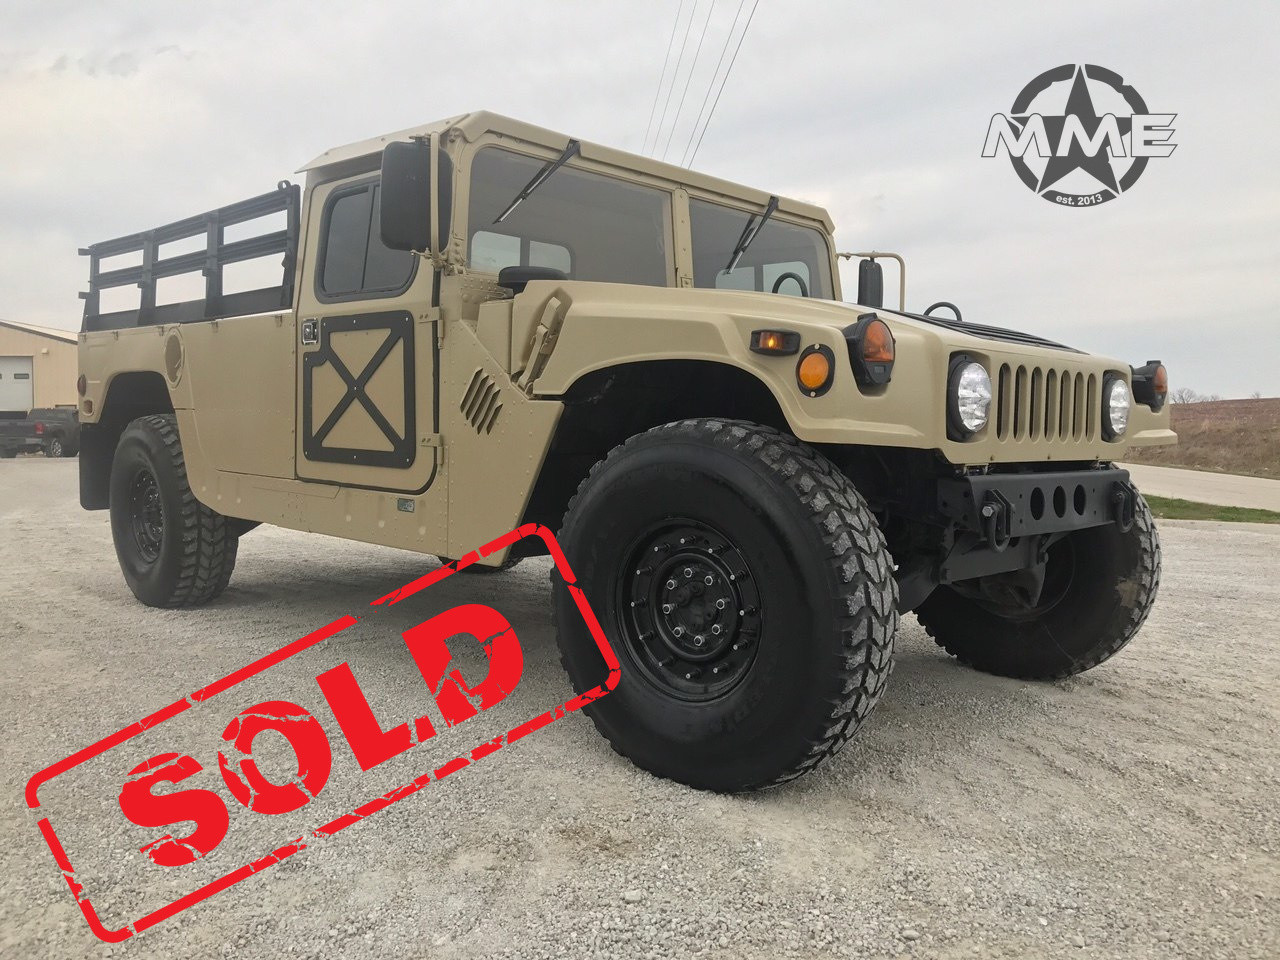 M1111 MILITARY Hard Top H11 HUMMER MILITARY TRUCK ON-ROAD TITLE | military h1 hummer